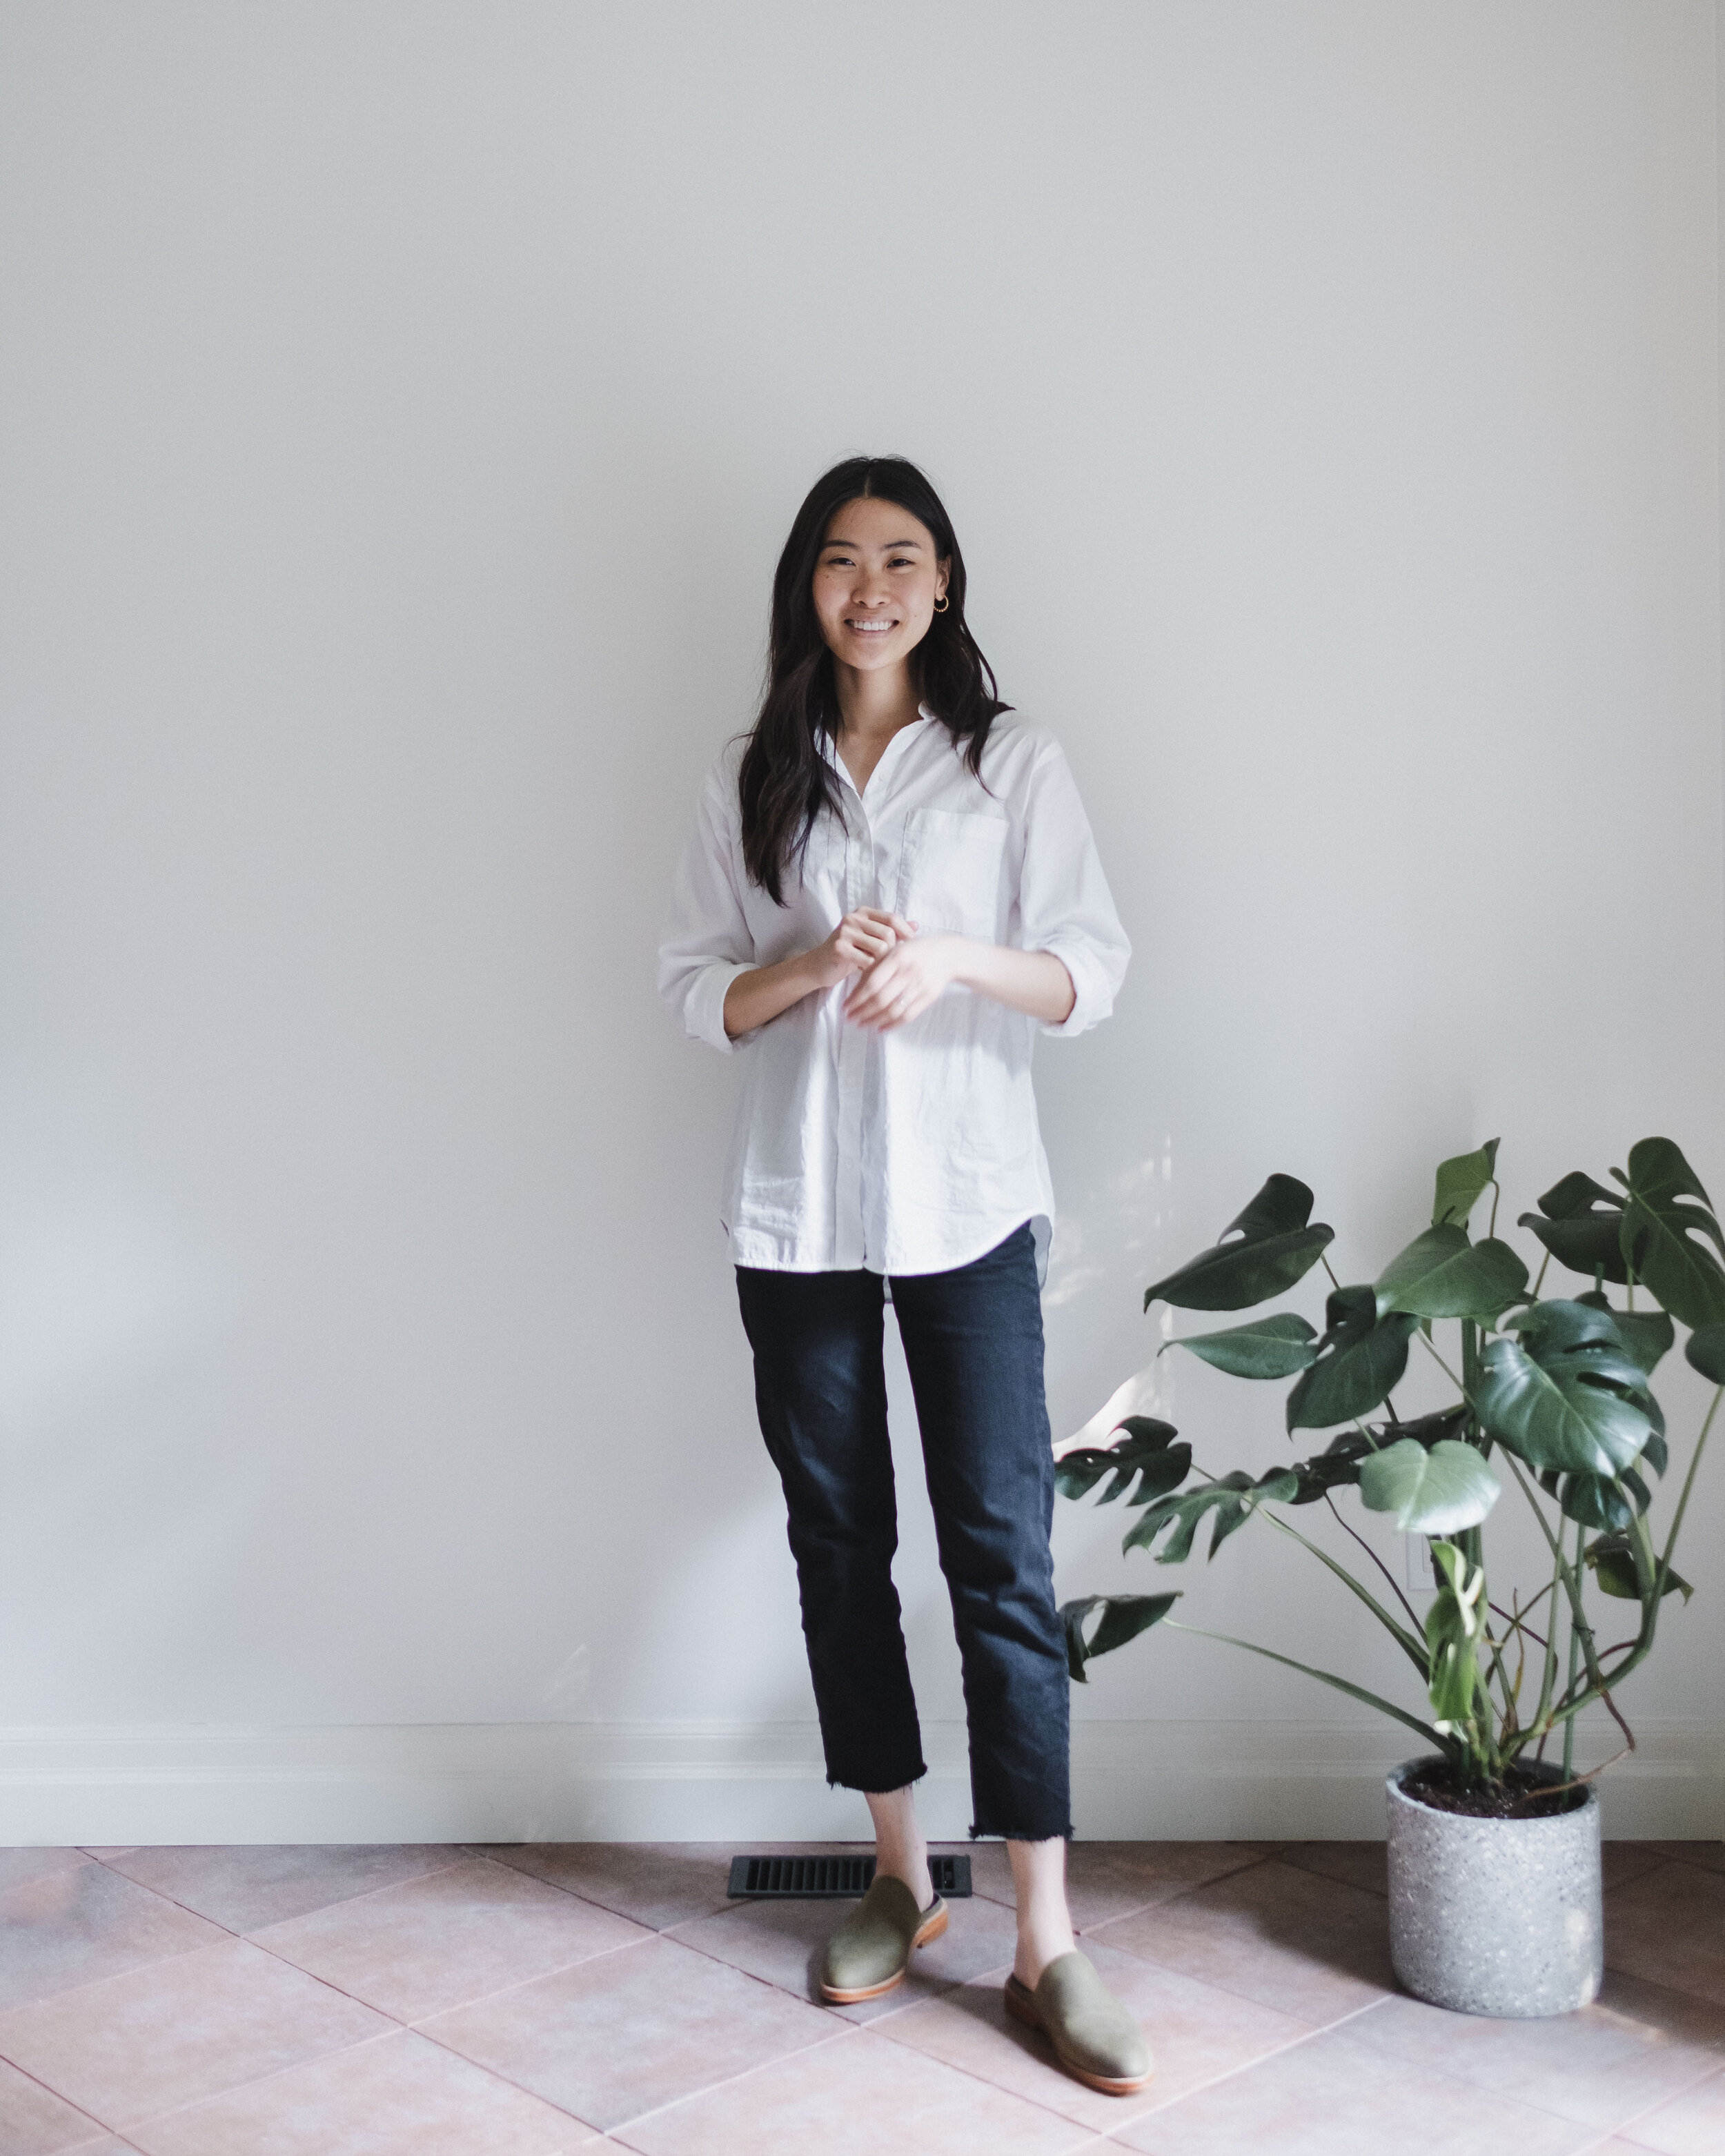 White Button-Up: Everlane  |  Jeans: Outland Denim  |  Mules: Fortress of Inca